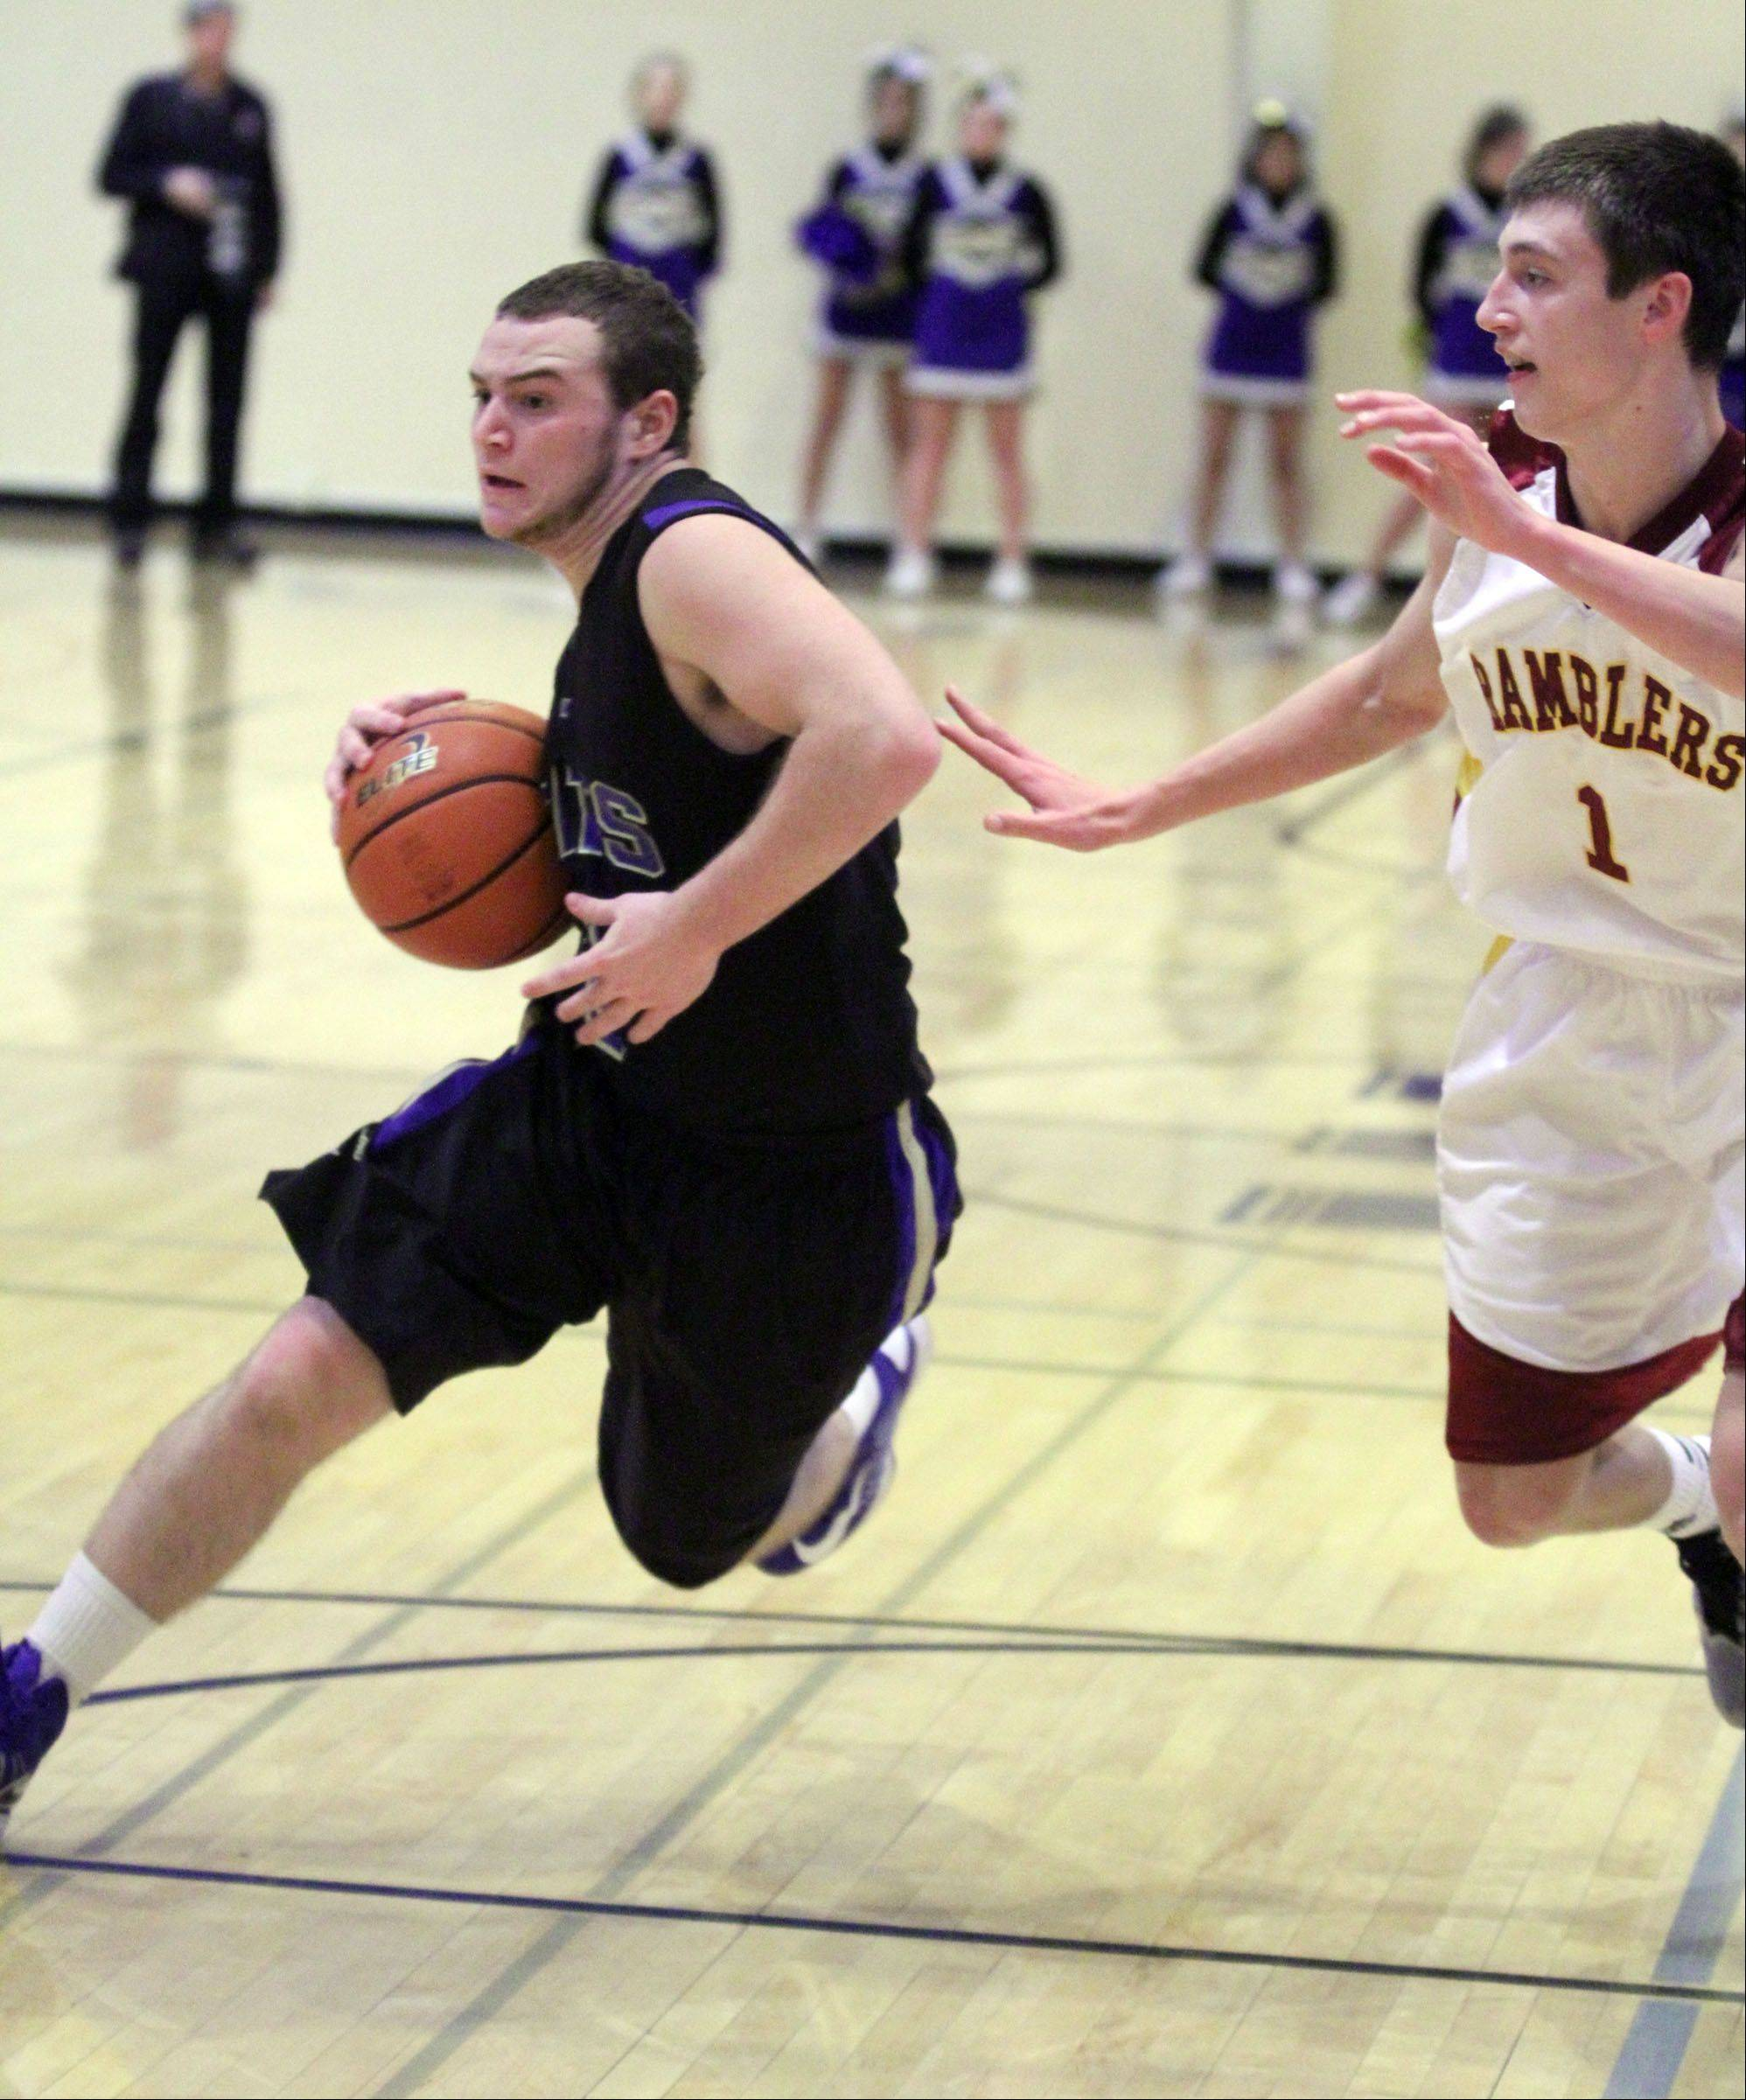 Images from the Wheeling vs. Loyola boys basketball game on Wednesday, December 26th, in Wheeling.